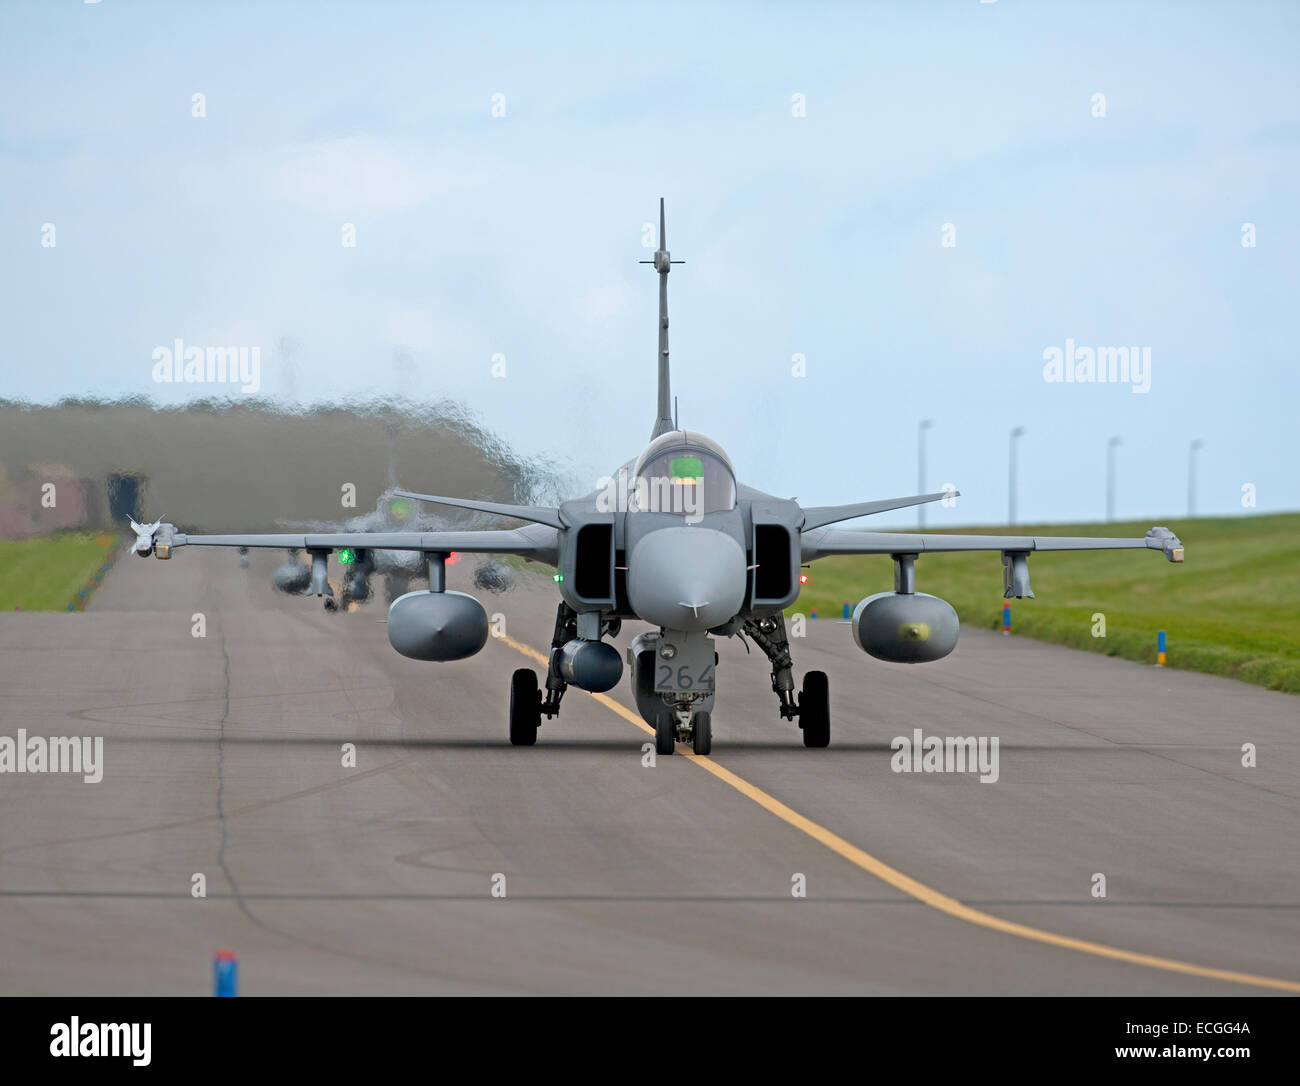 Line up of JAS 39 Saab Gripen single seat Mach 2 Fighter Jets taxiing to 05 at RAF Lossiemouth. SCO 9312. - Stock Image